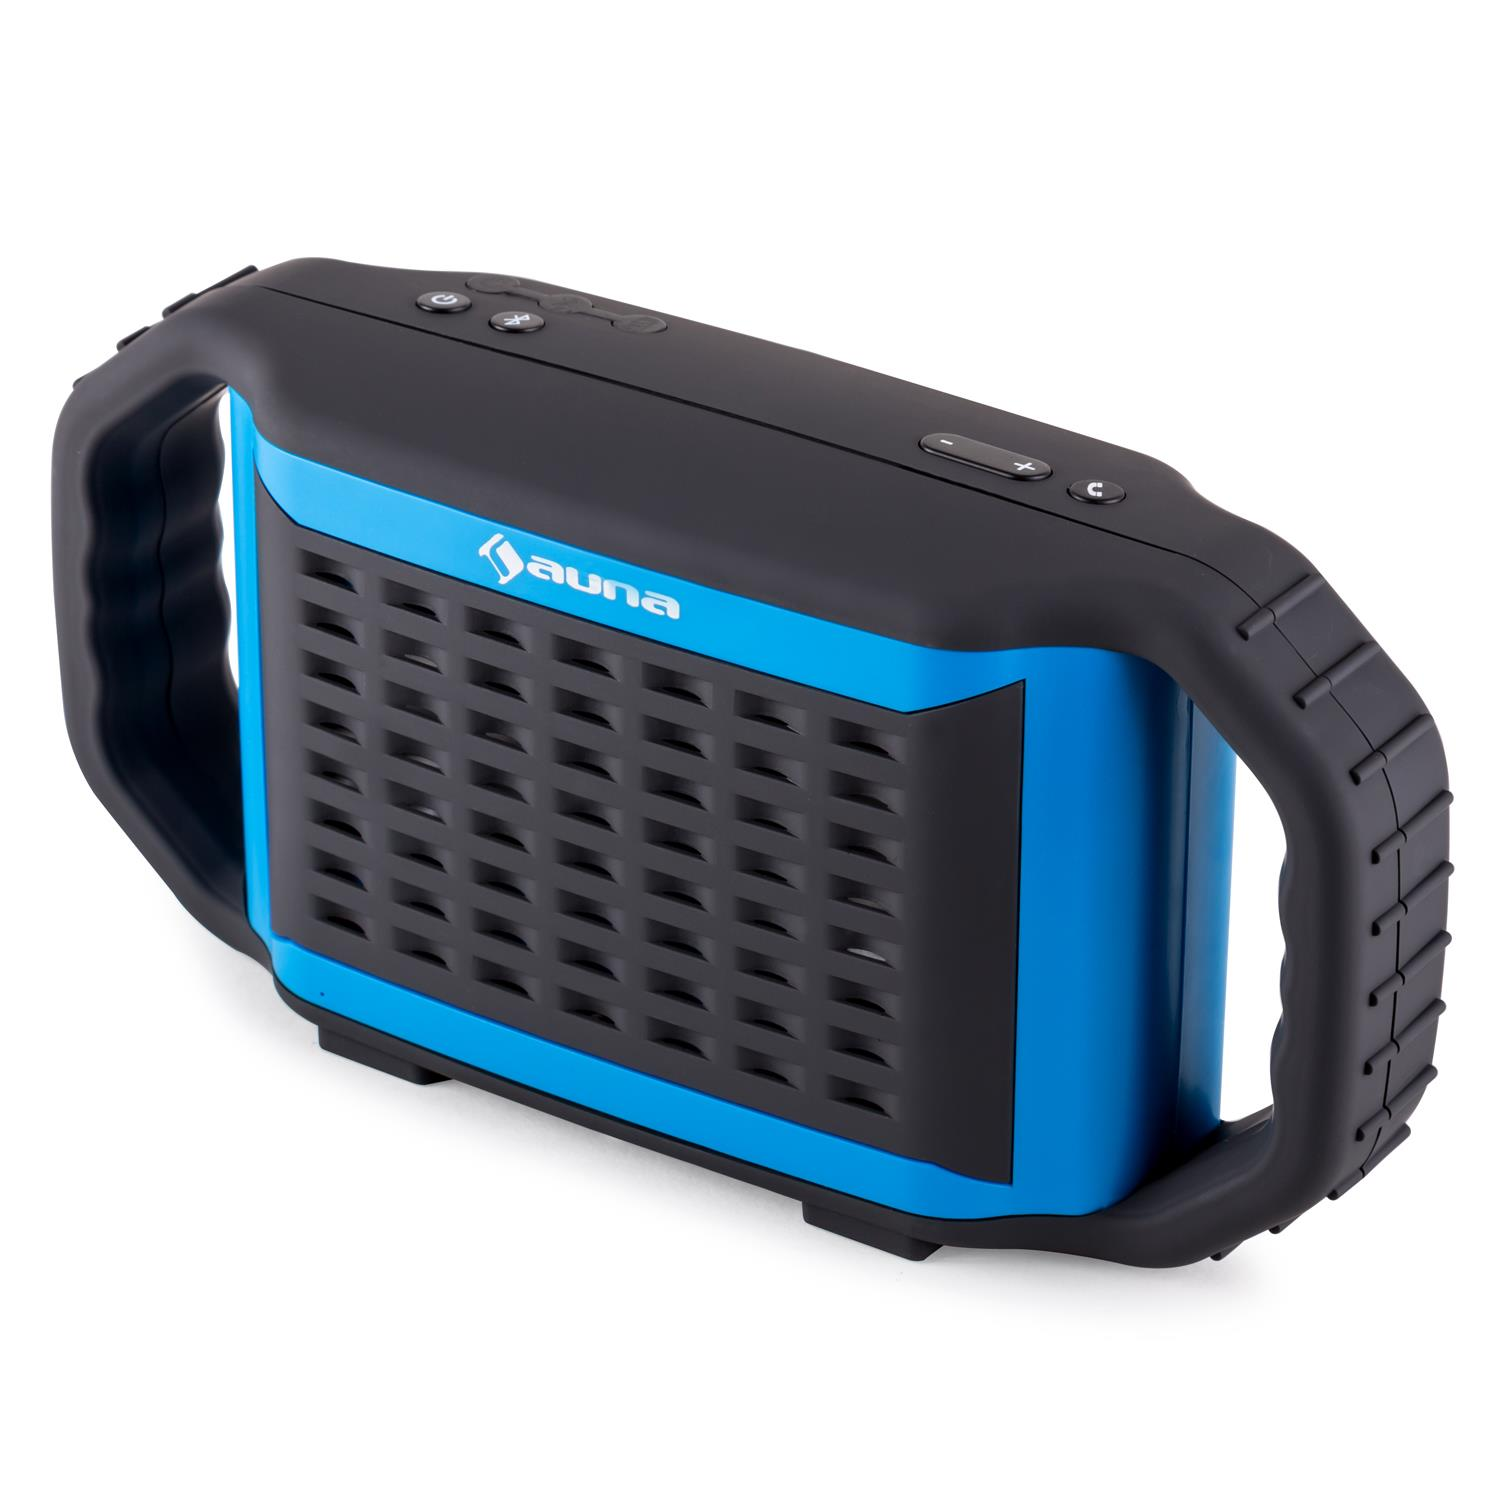 miniature 6 - ENCEINTE-NOMADE-SANS-FIL-BLUETOOTH-AUX-STREAMING-AUDIO-SMARTPHONE-TABLETTE-BLEU